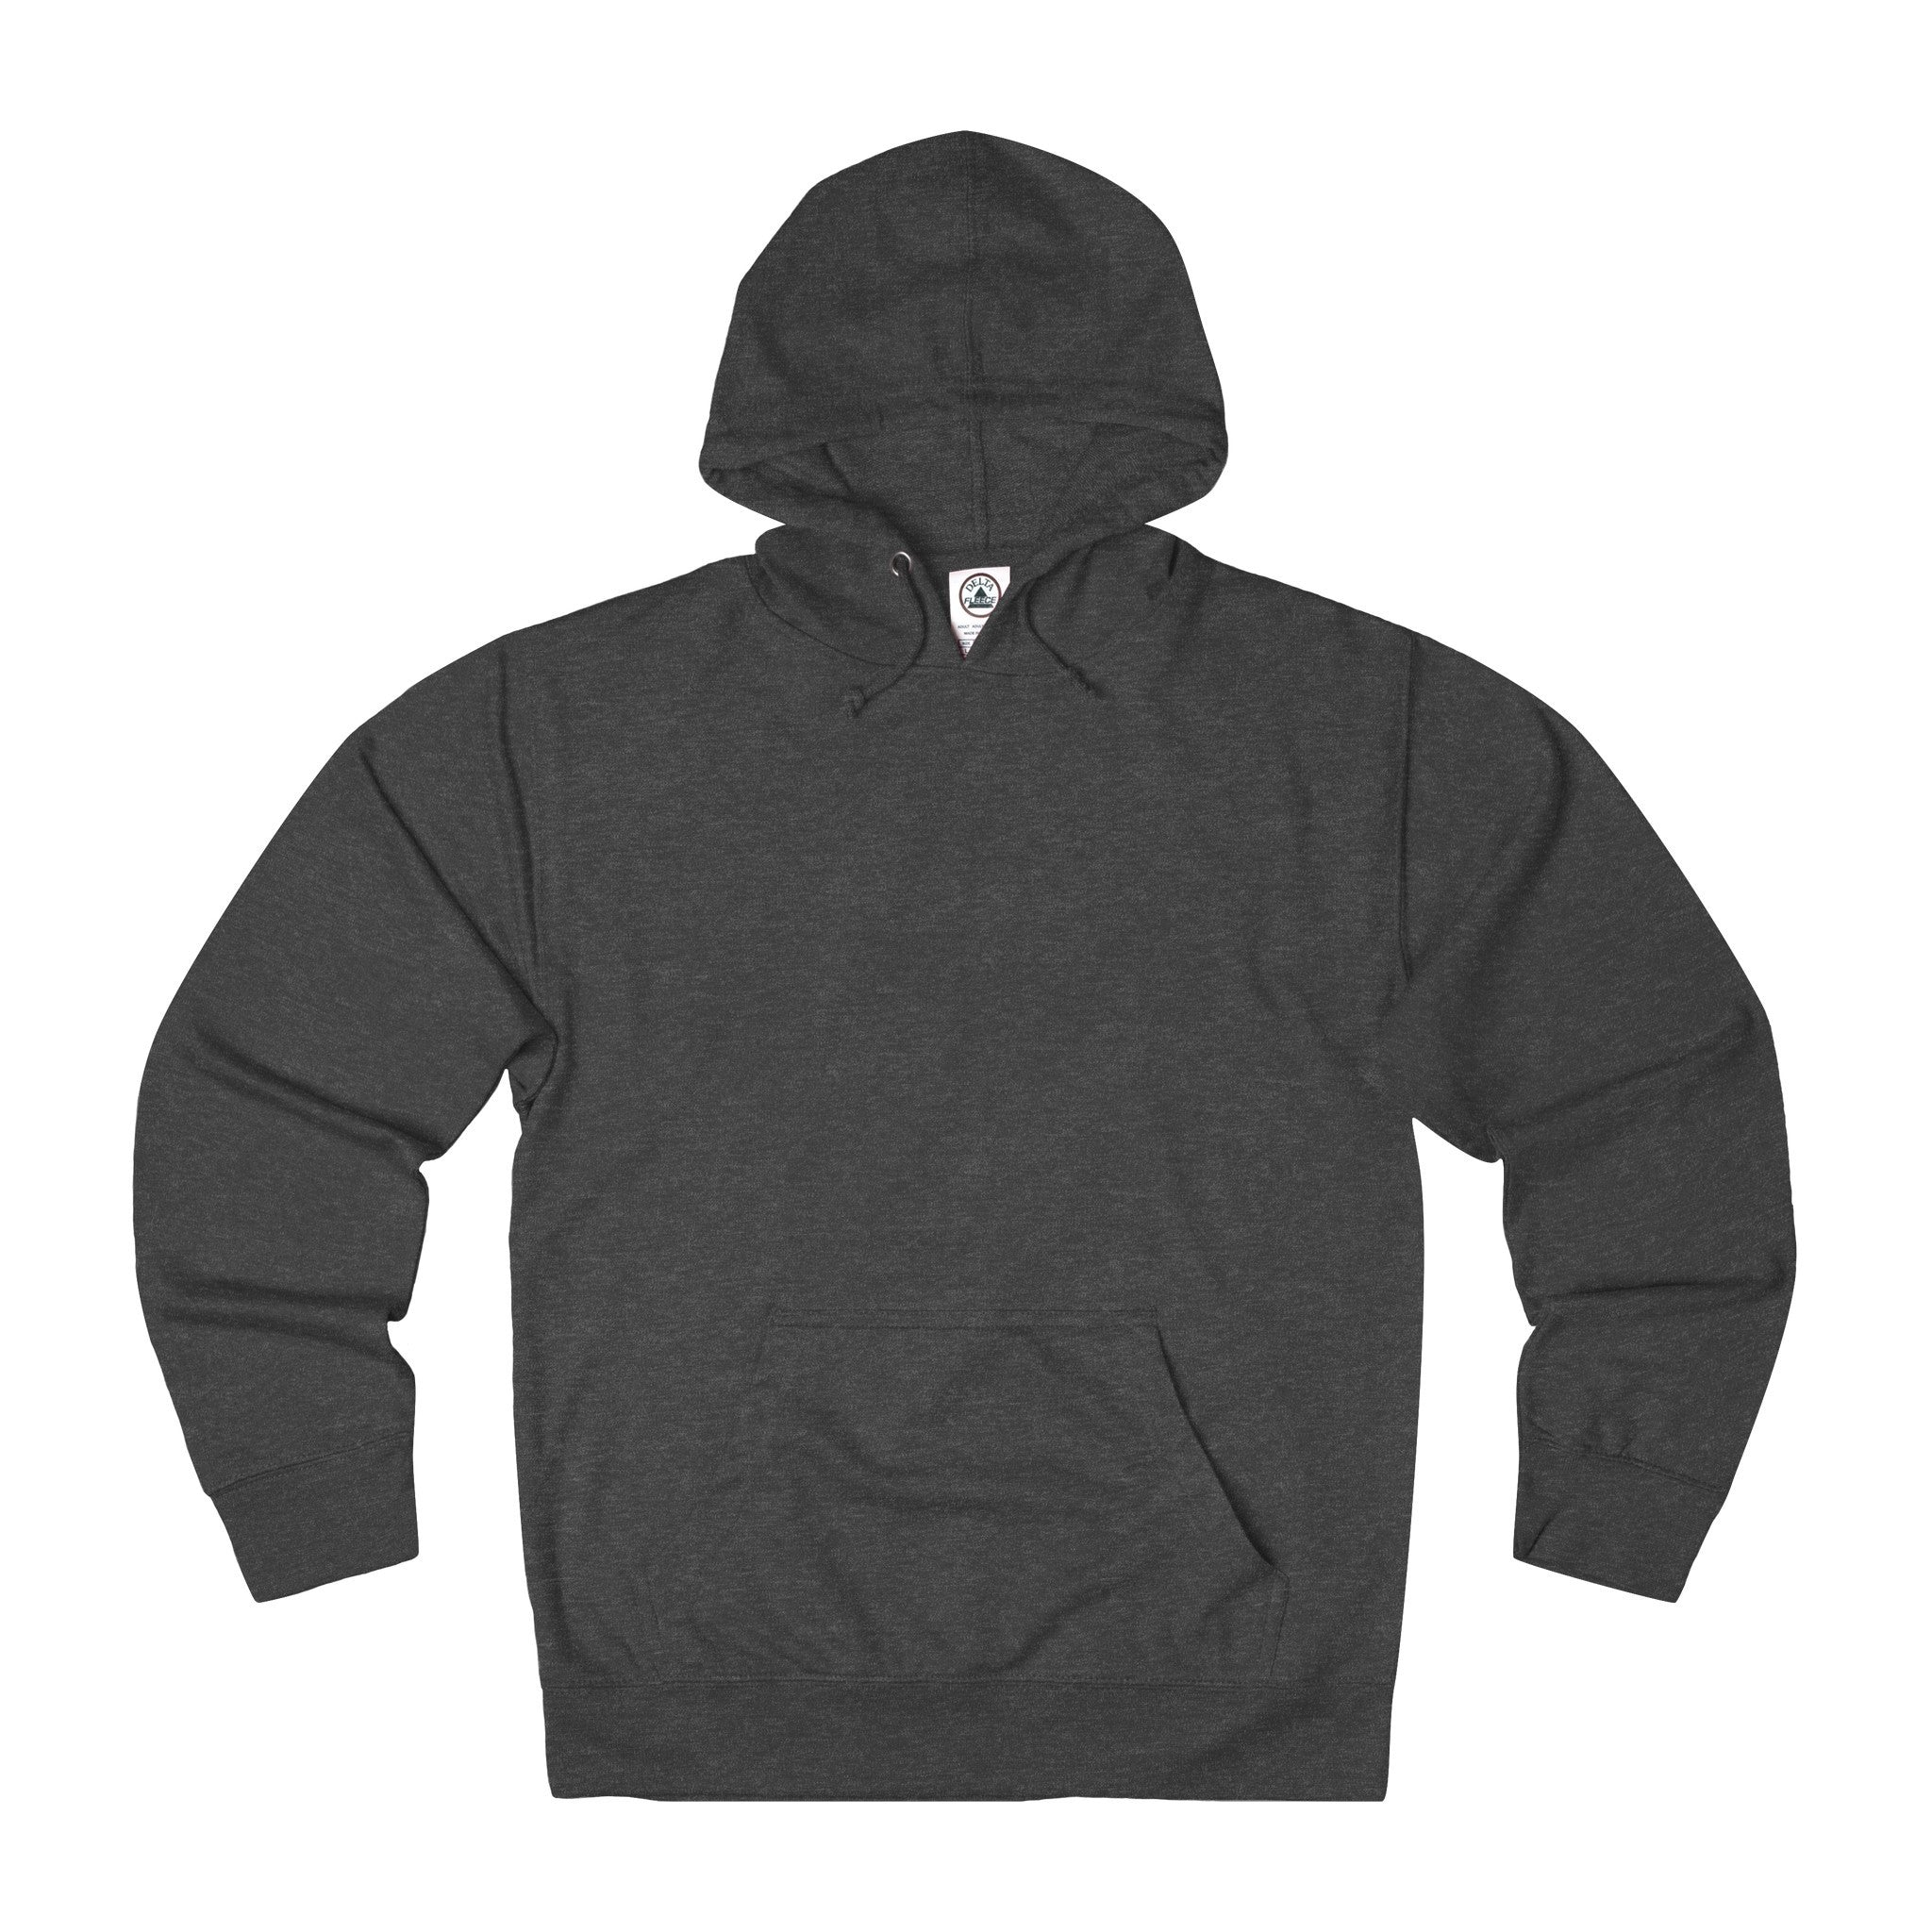 Mind&Soul Society Black Design French Terry Hoodie (10 colors available)